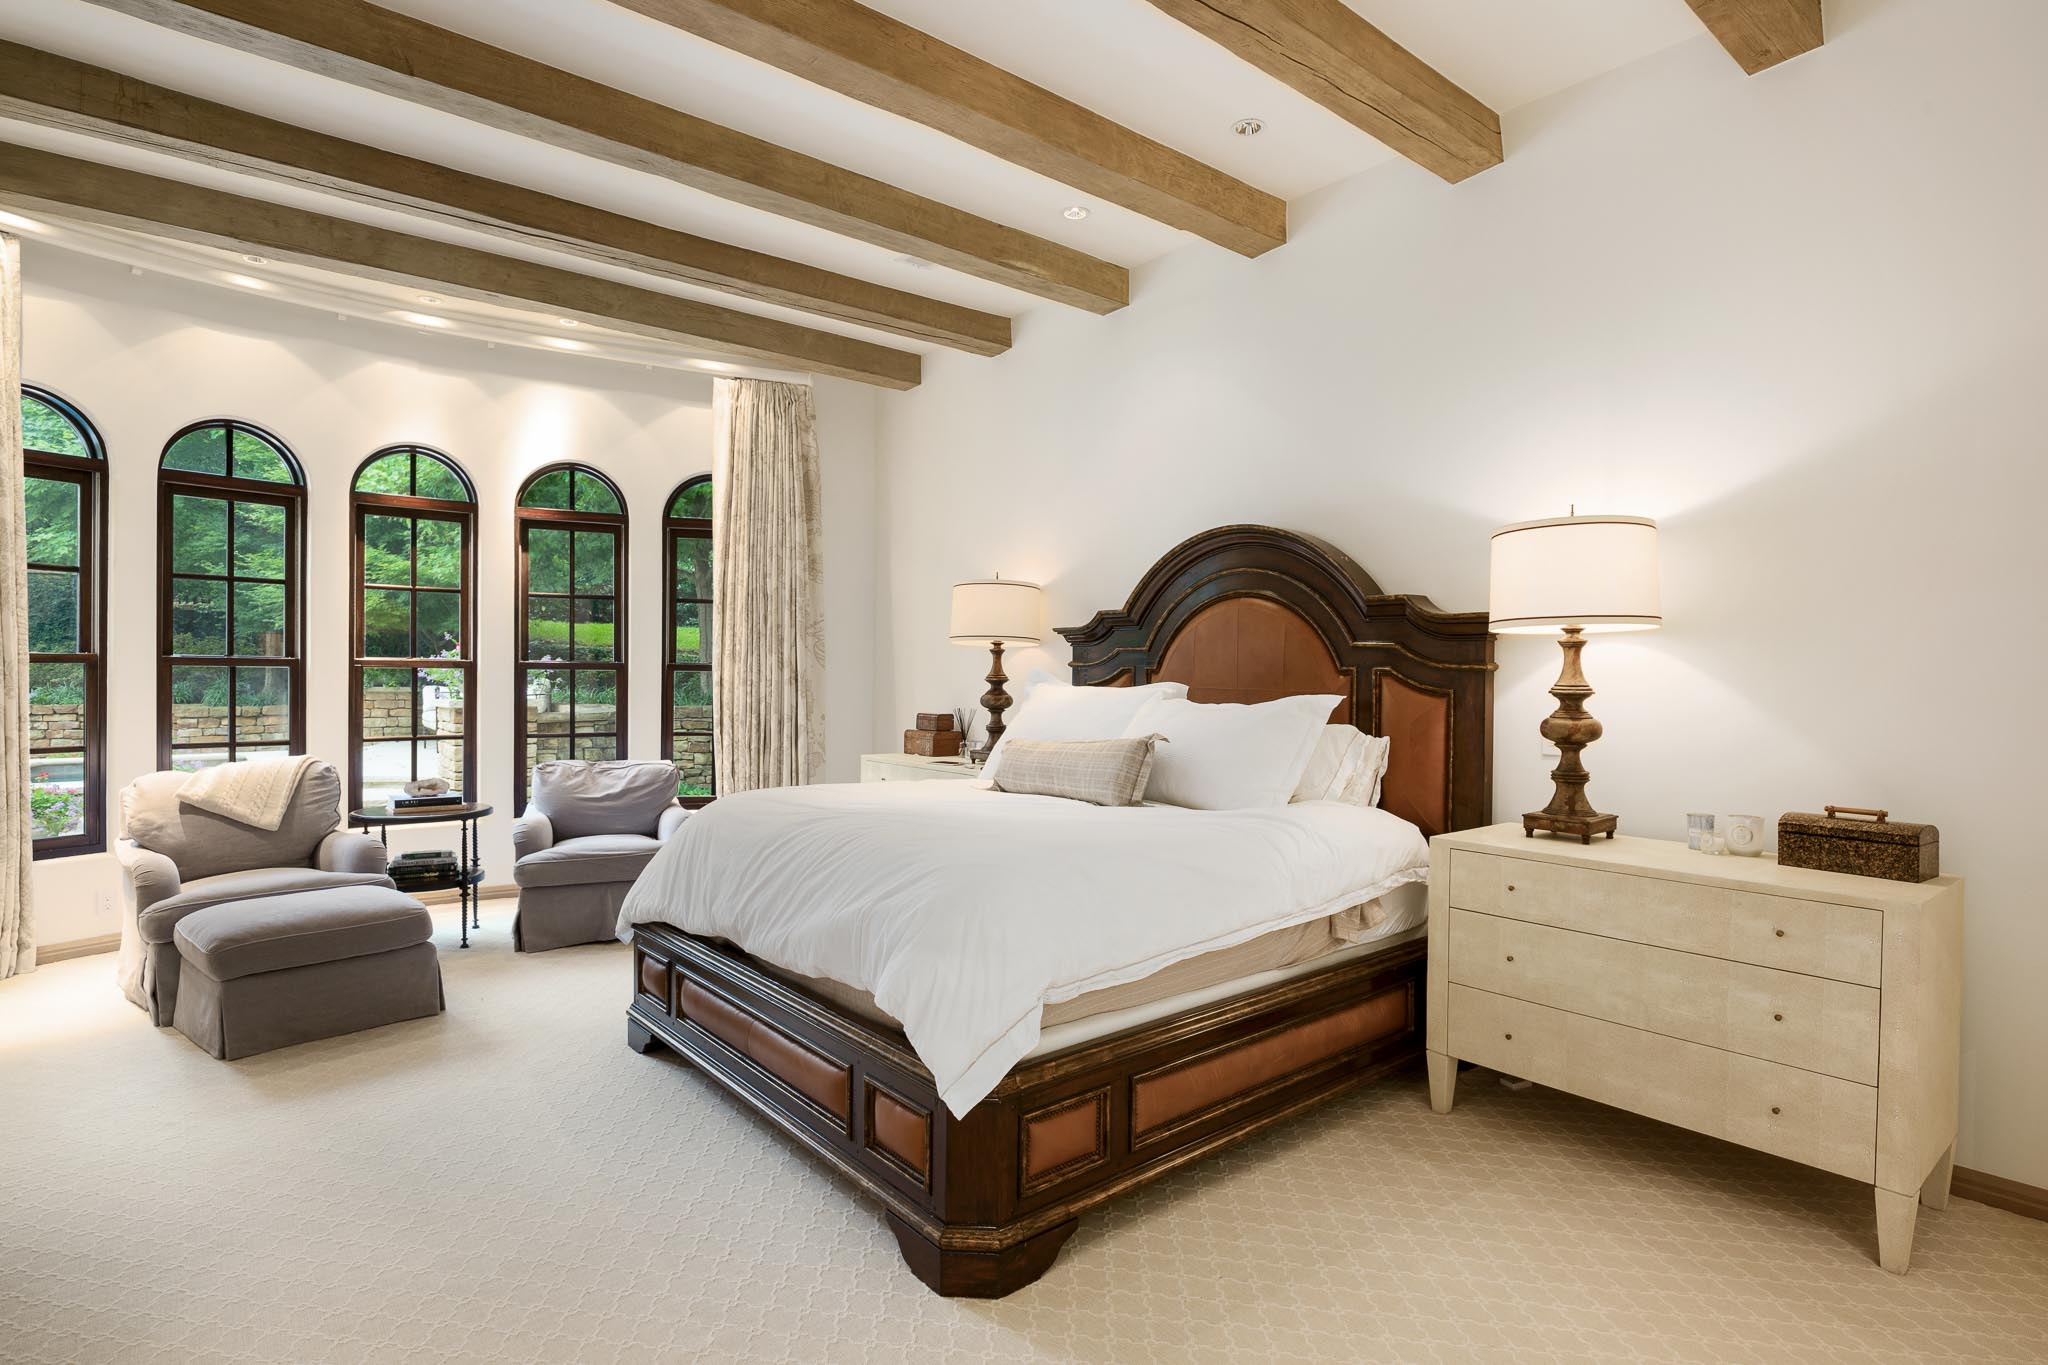 Master suite with wood beams